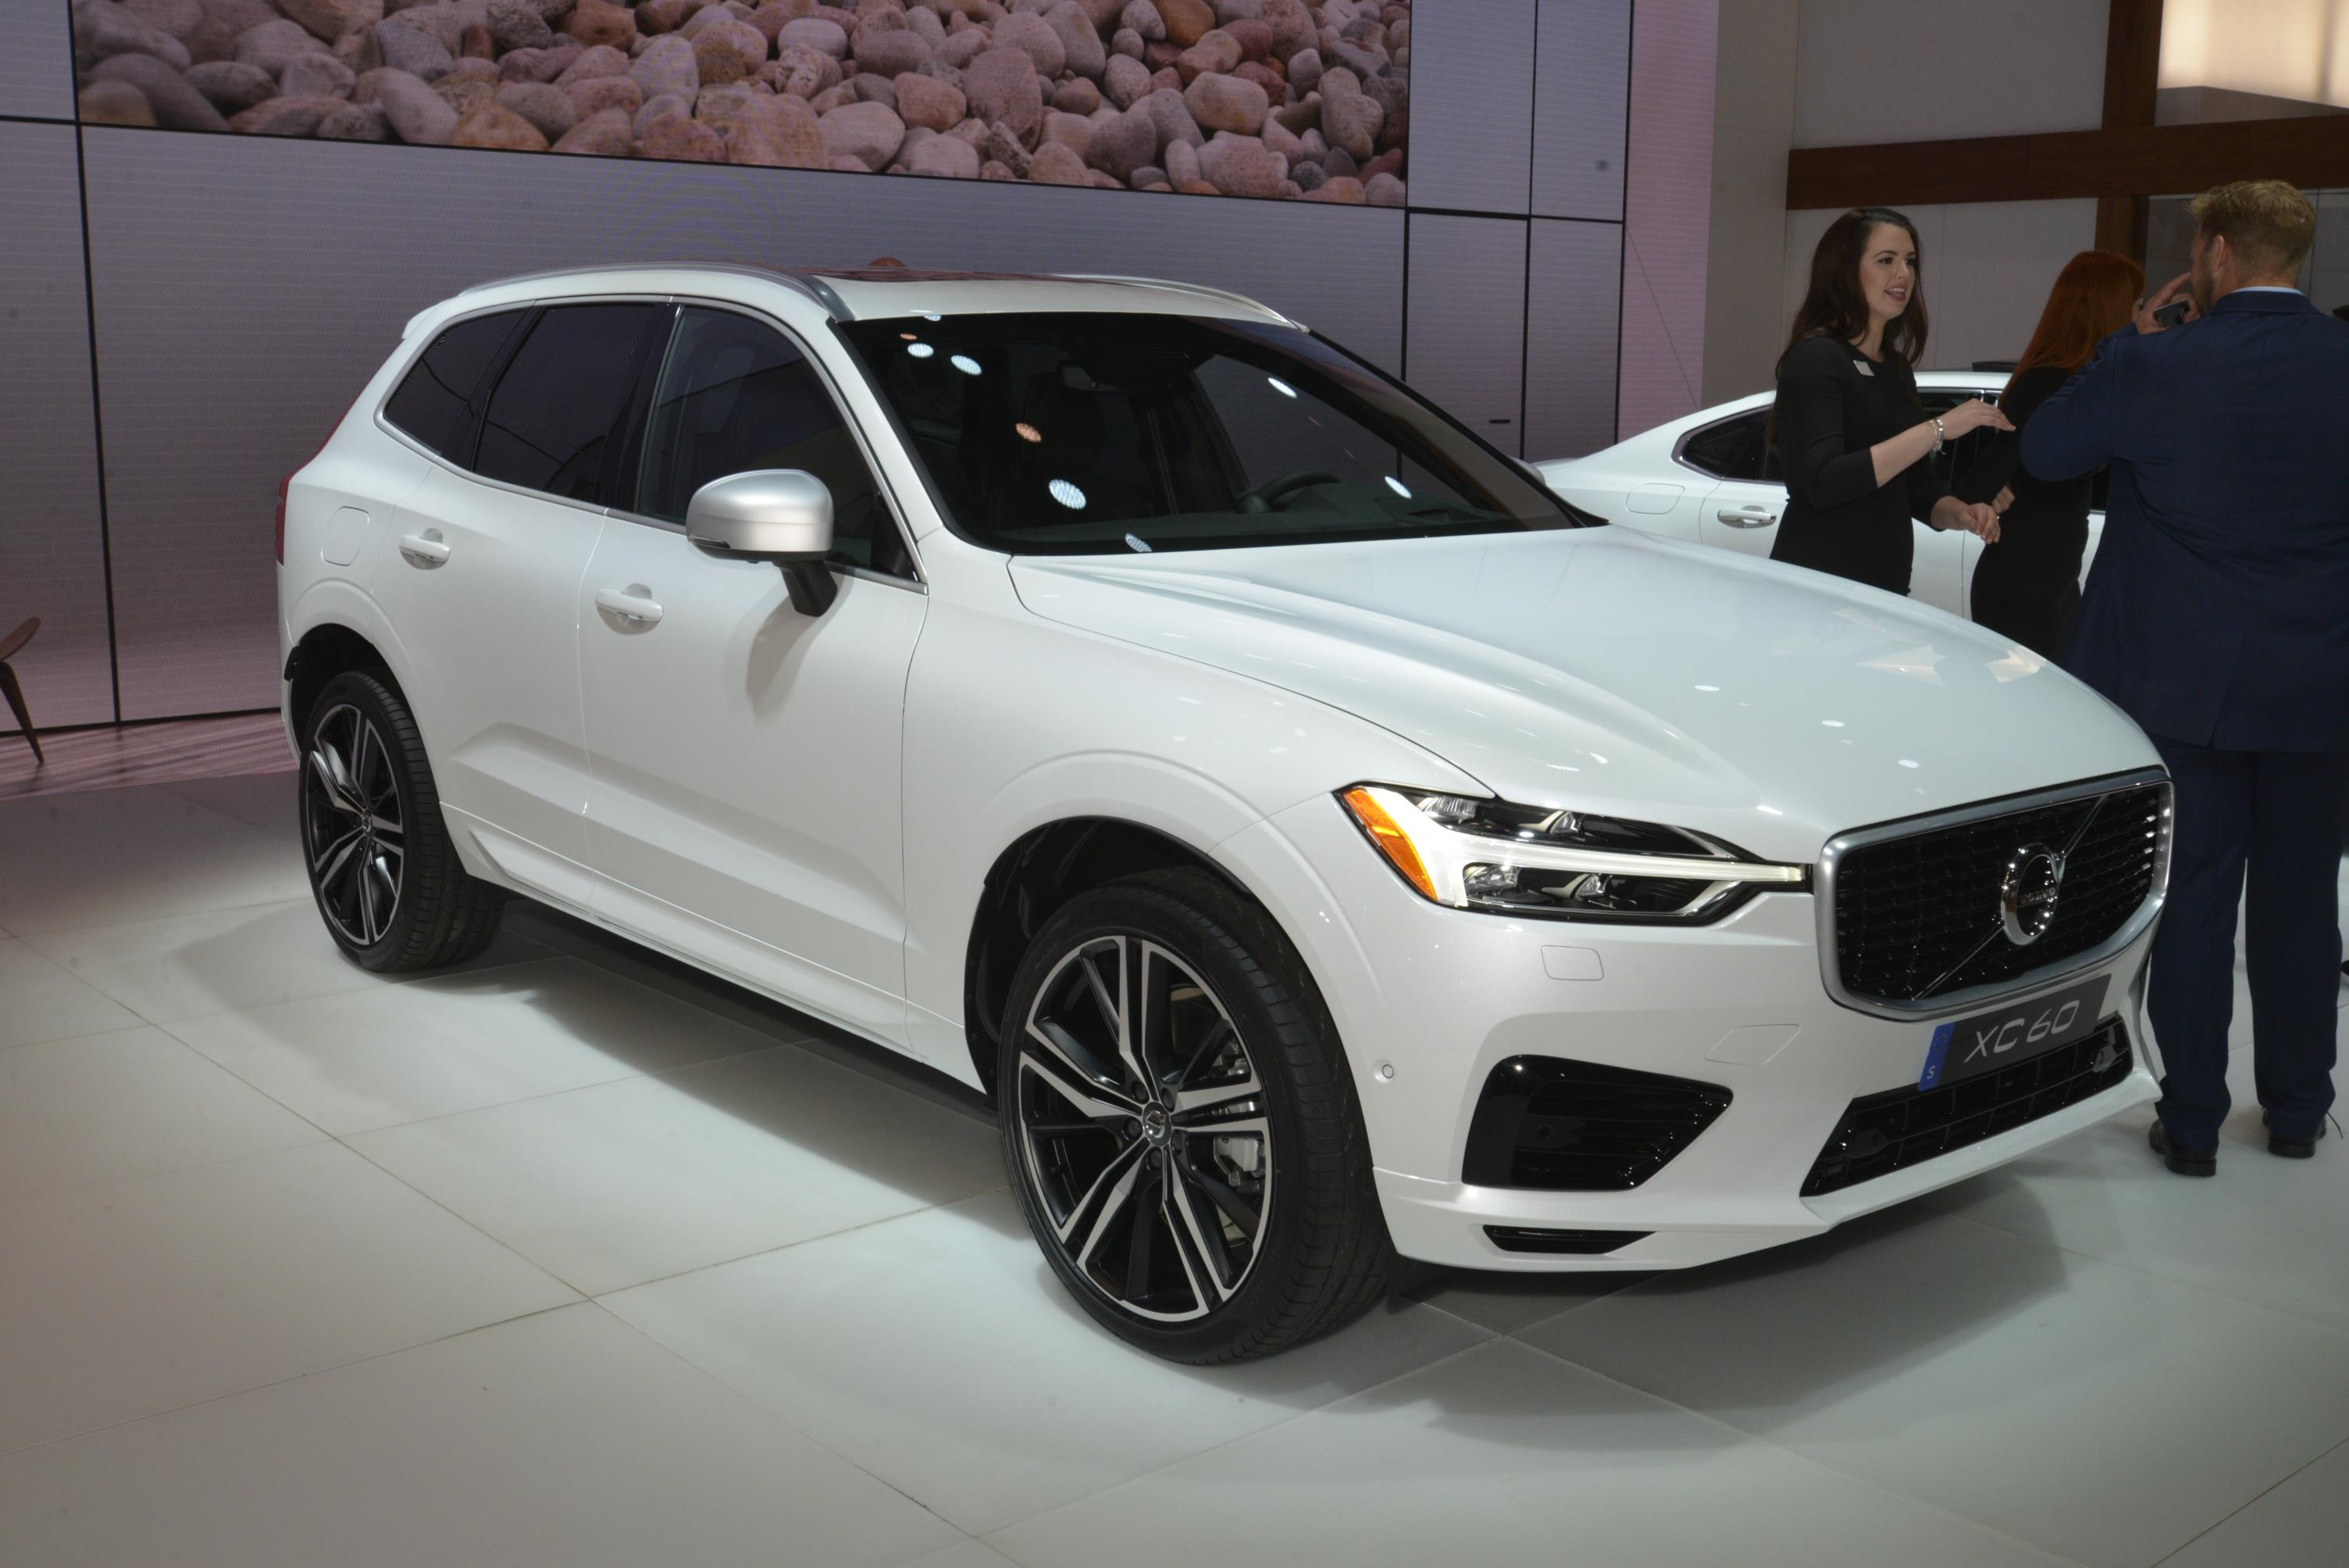 r raised volvo details plenty of se get our to road position the allows you on buyers see and automatic driving car review easy is drive guide test new used vehicle ahead came design